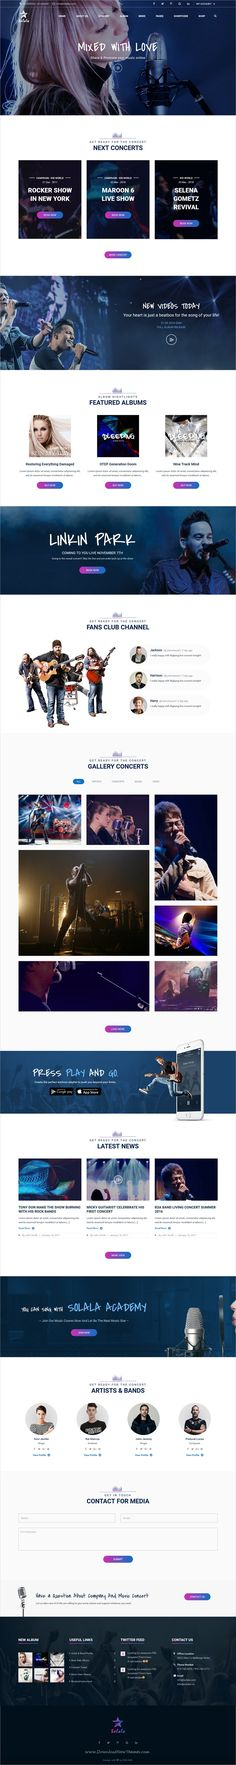 Solala is a wonderful 6in1 responsive #WordPress theme for #music, band, #artist, music industry, fanclub websites download now➩ https://themeforest.net/item/solala-music-wp-entertainment-band-music-wordpress-theme/19361975?ref=Datasata